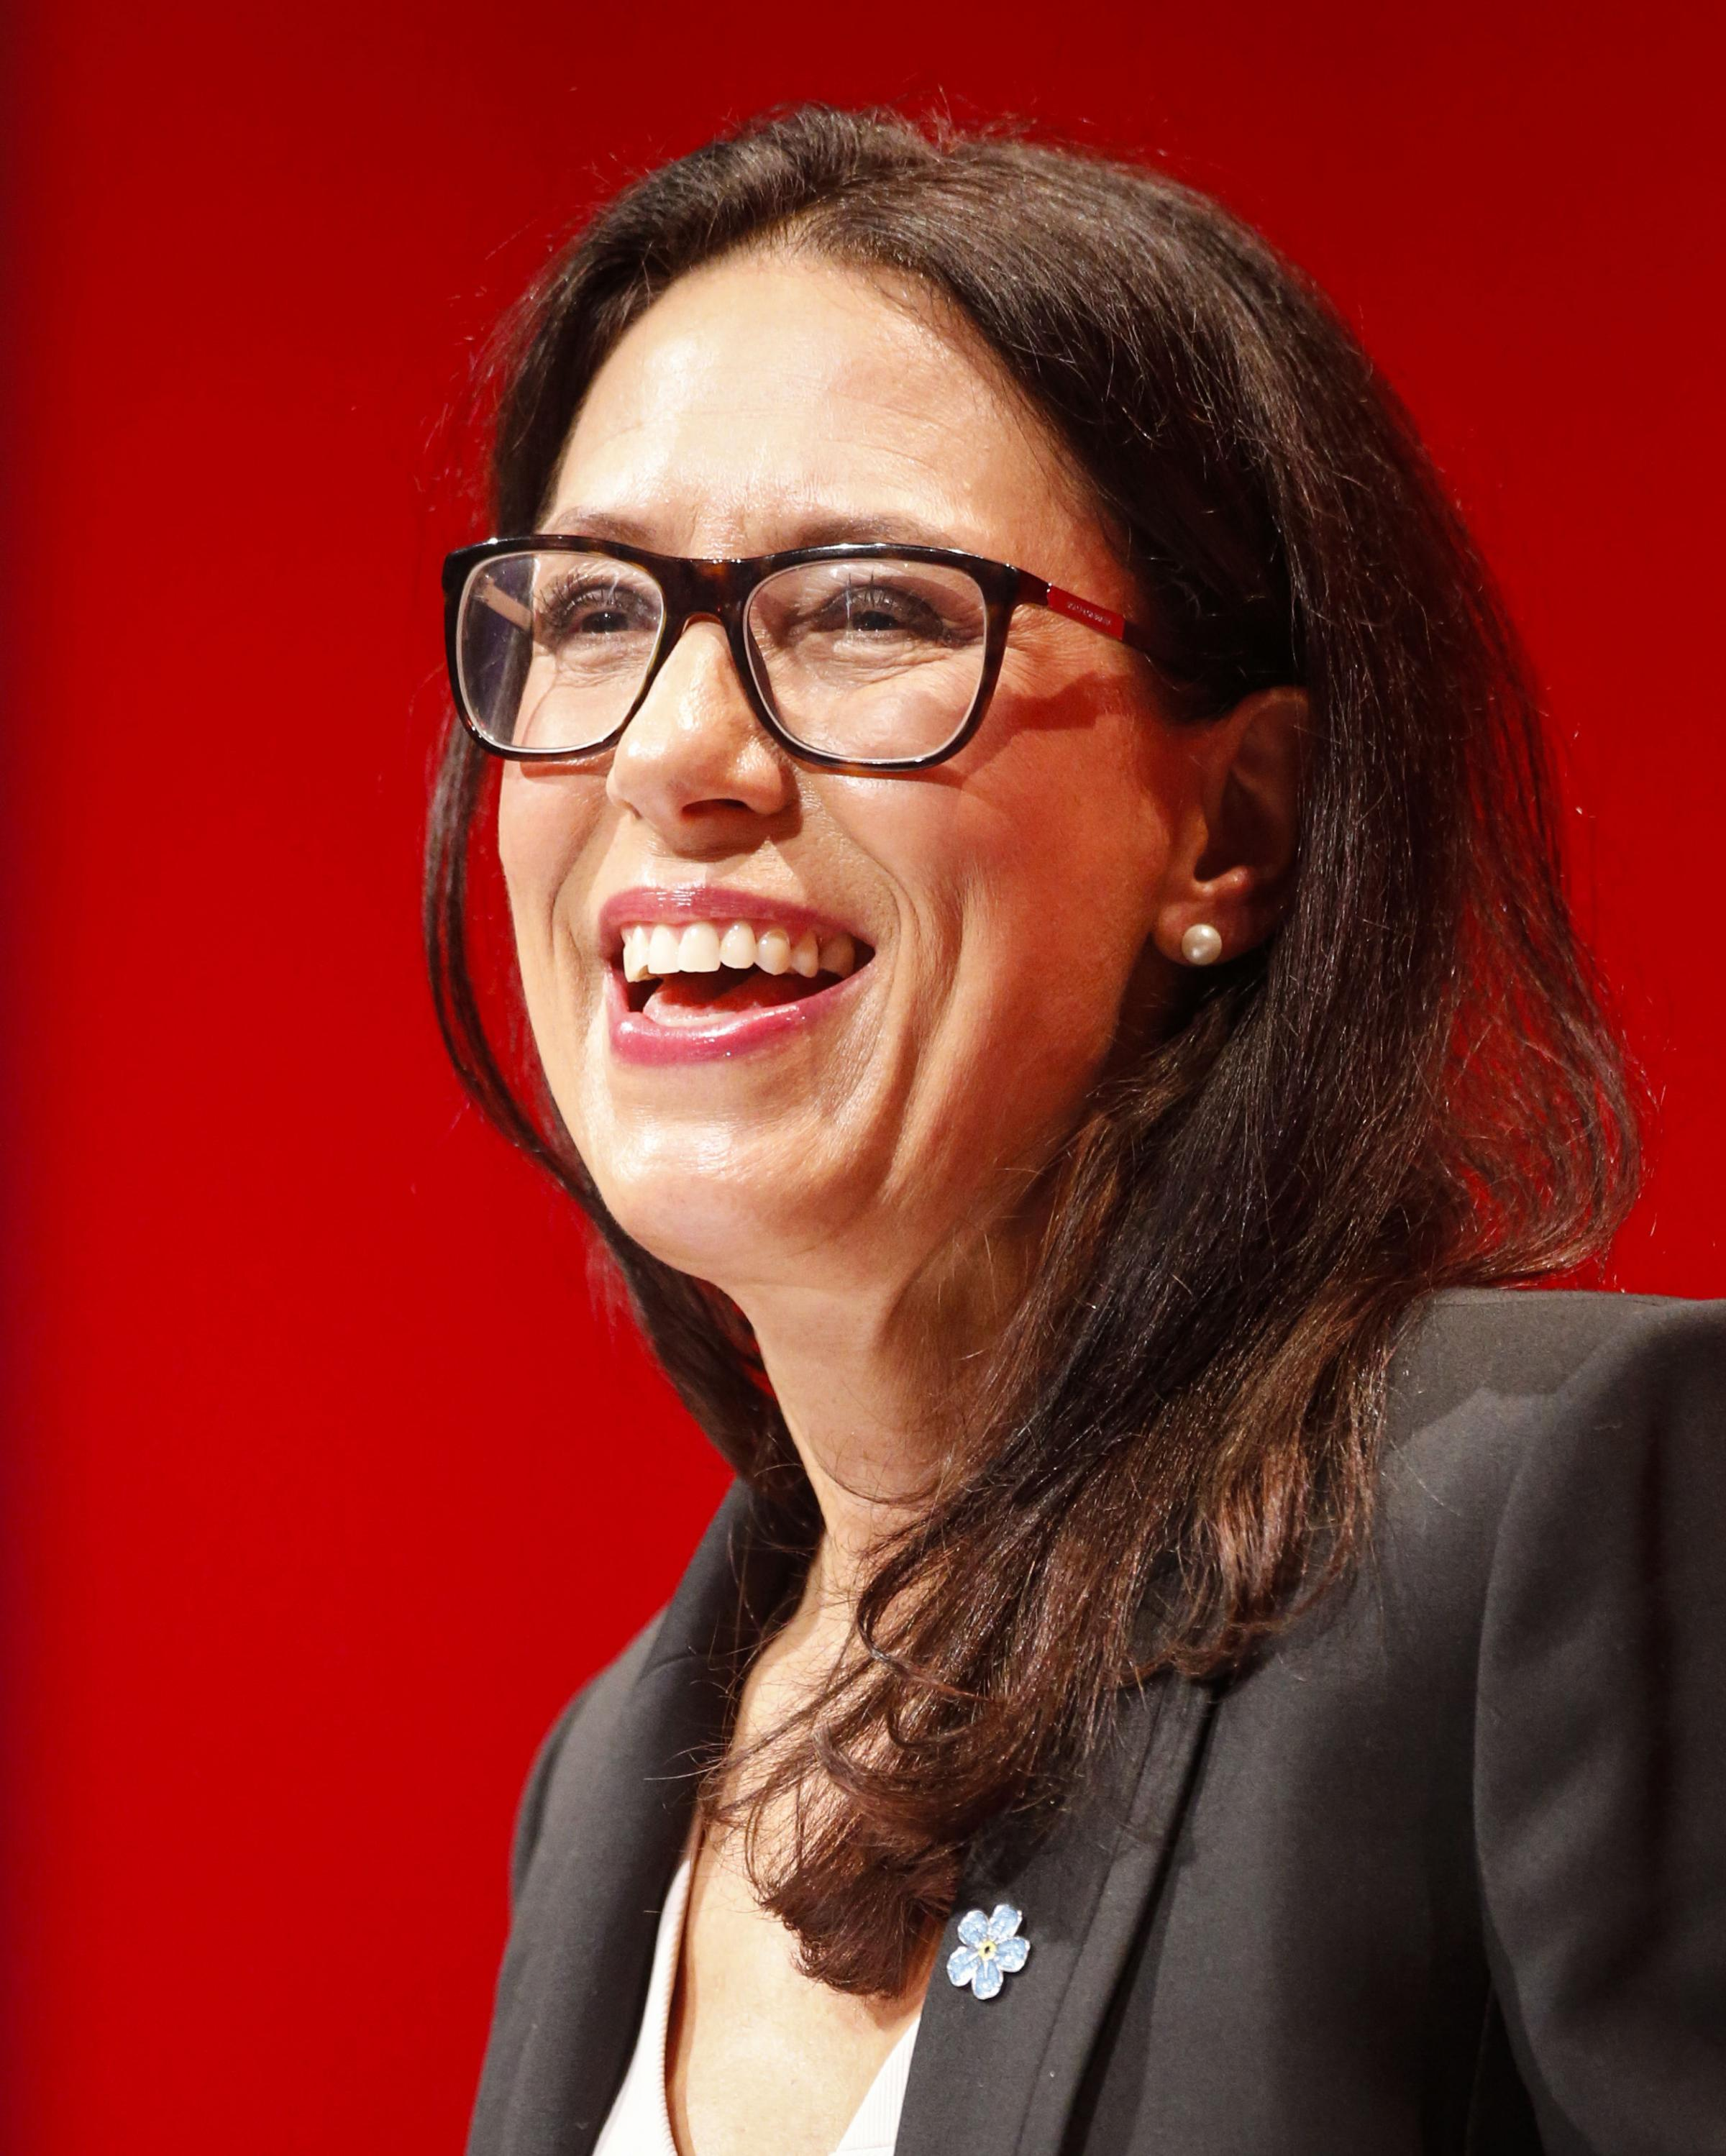 ROW: Debbie Abrahams. Photo: Danny Lawson/PA Wire